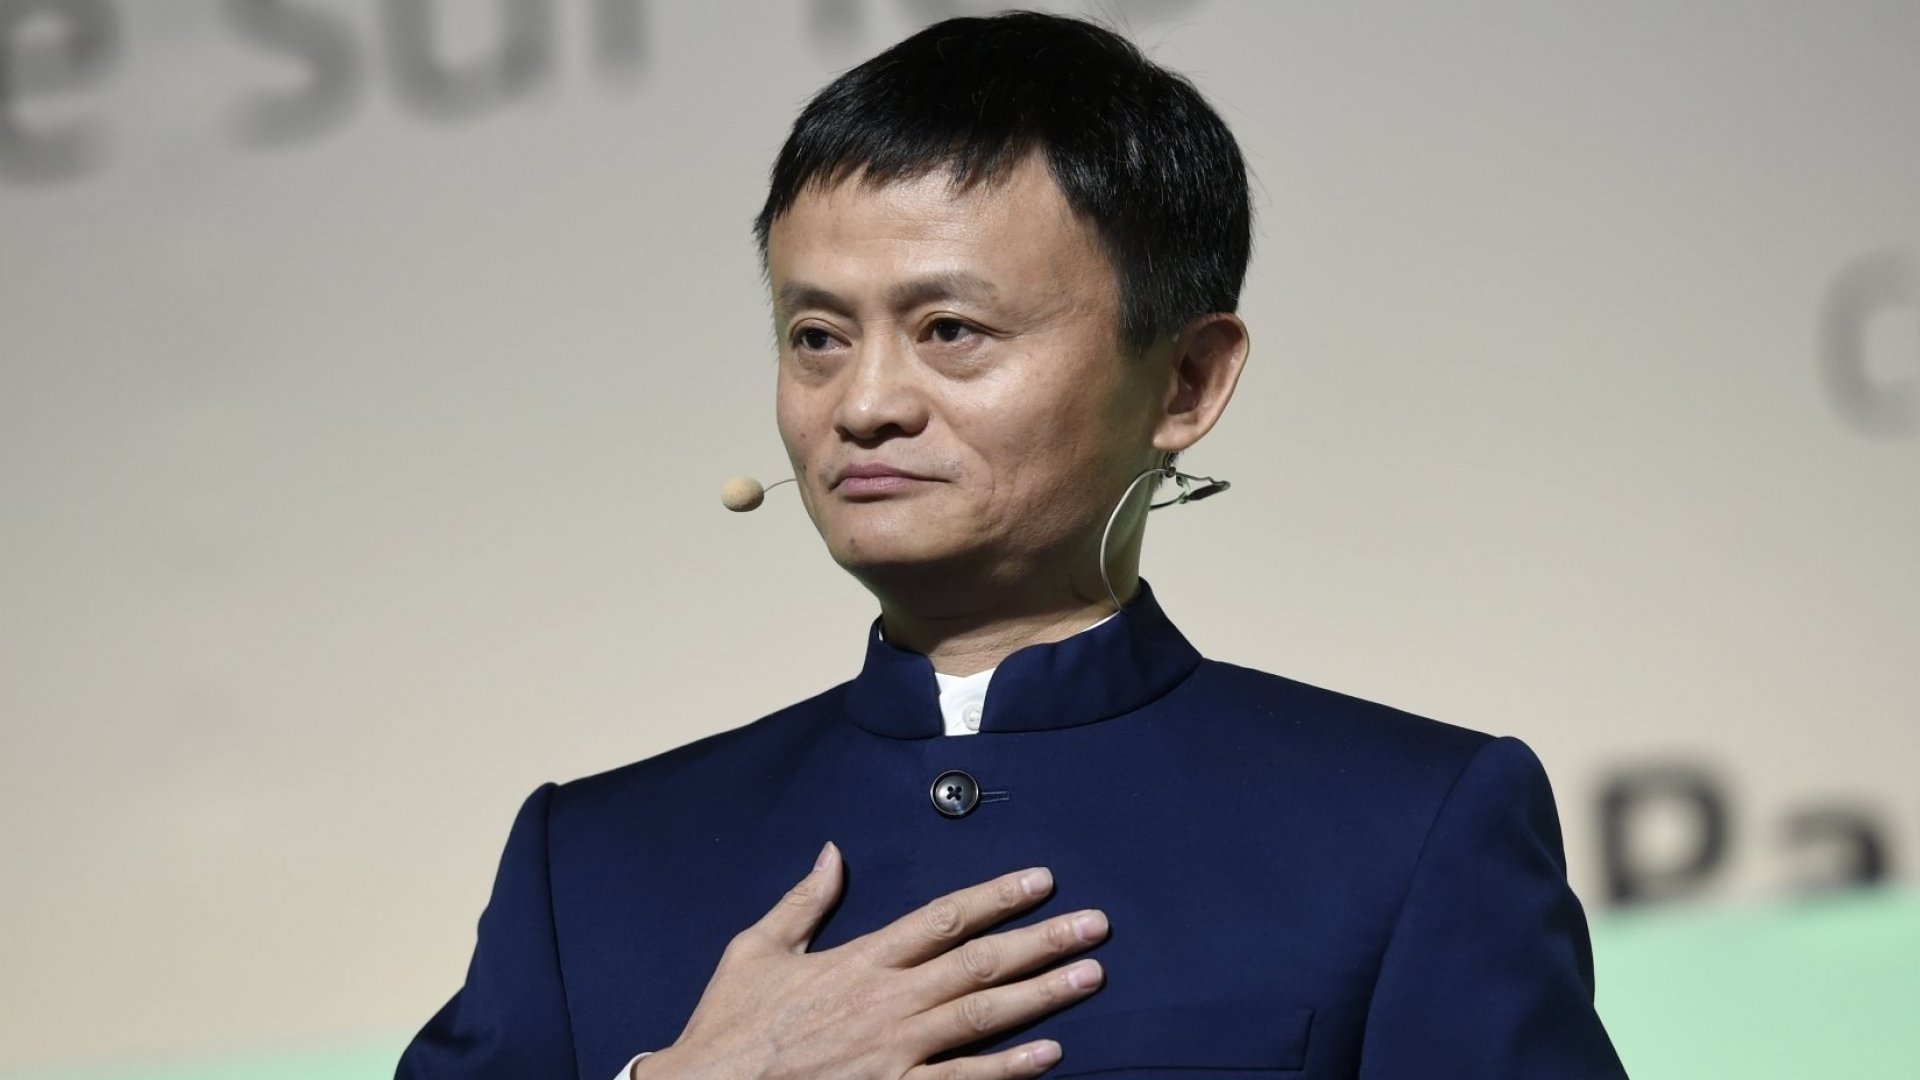 Alibaba CEO Jack Ma: If You Want Your Life to Be Simple, Don't Be a Leader